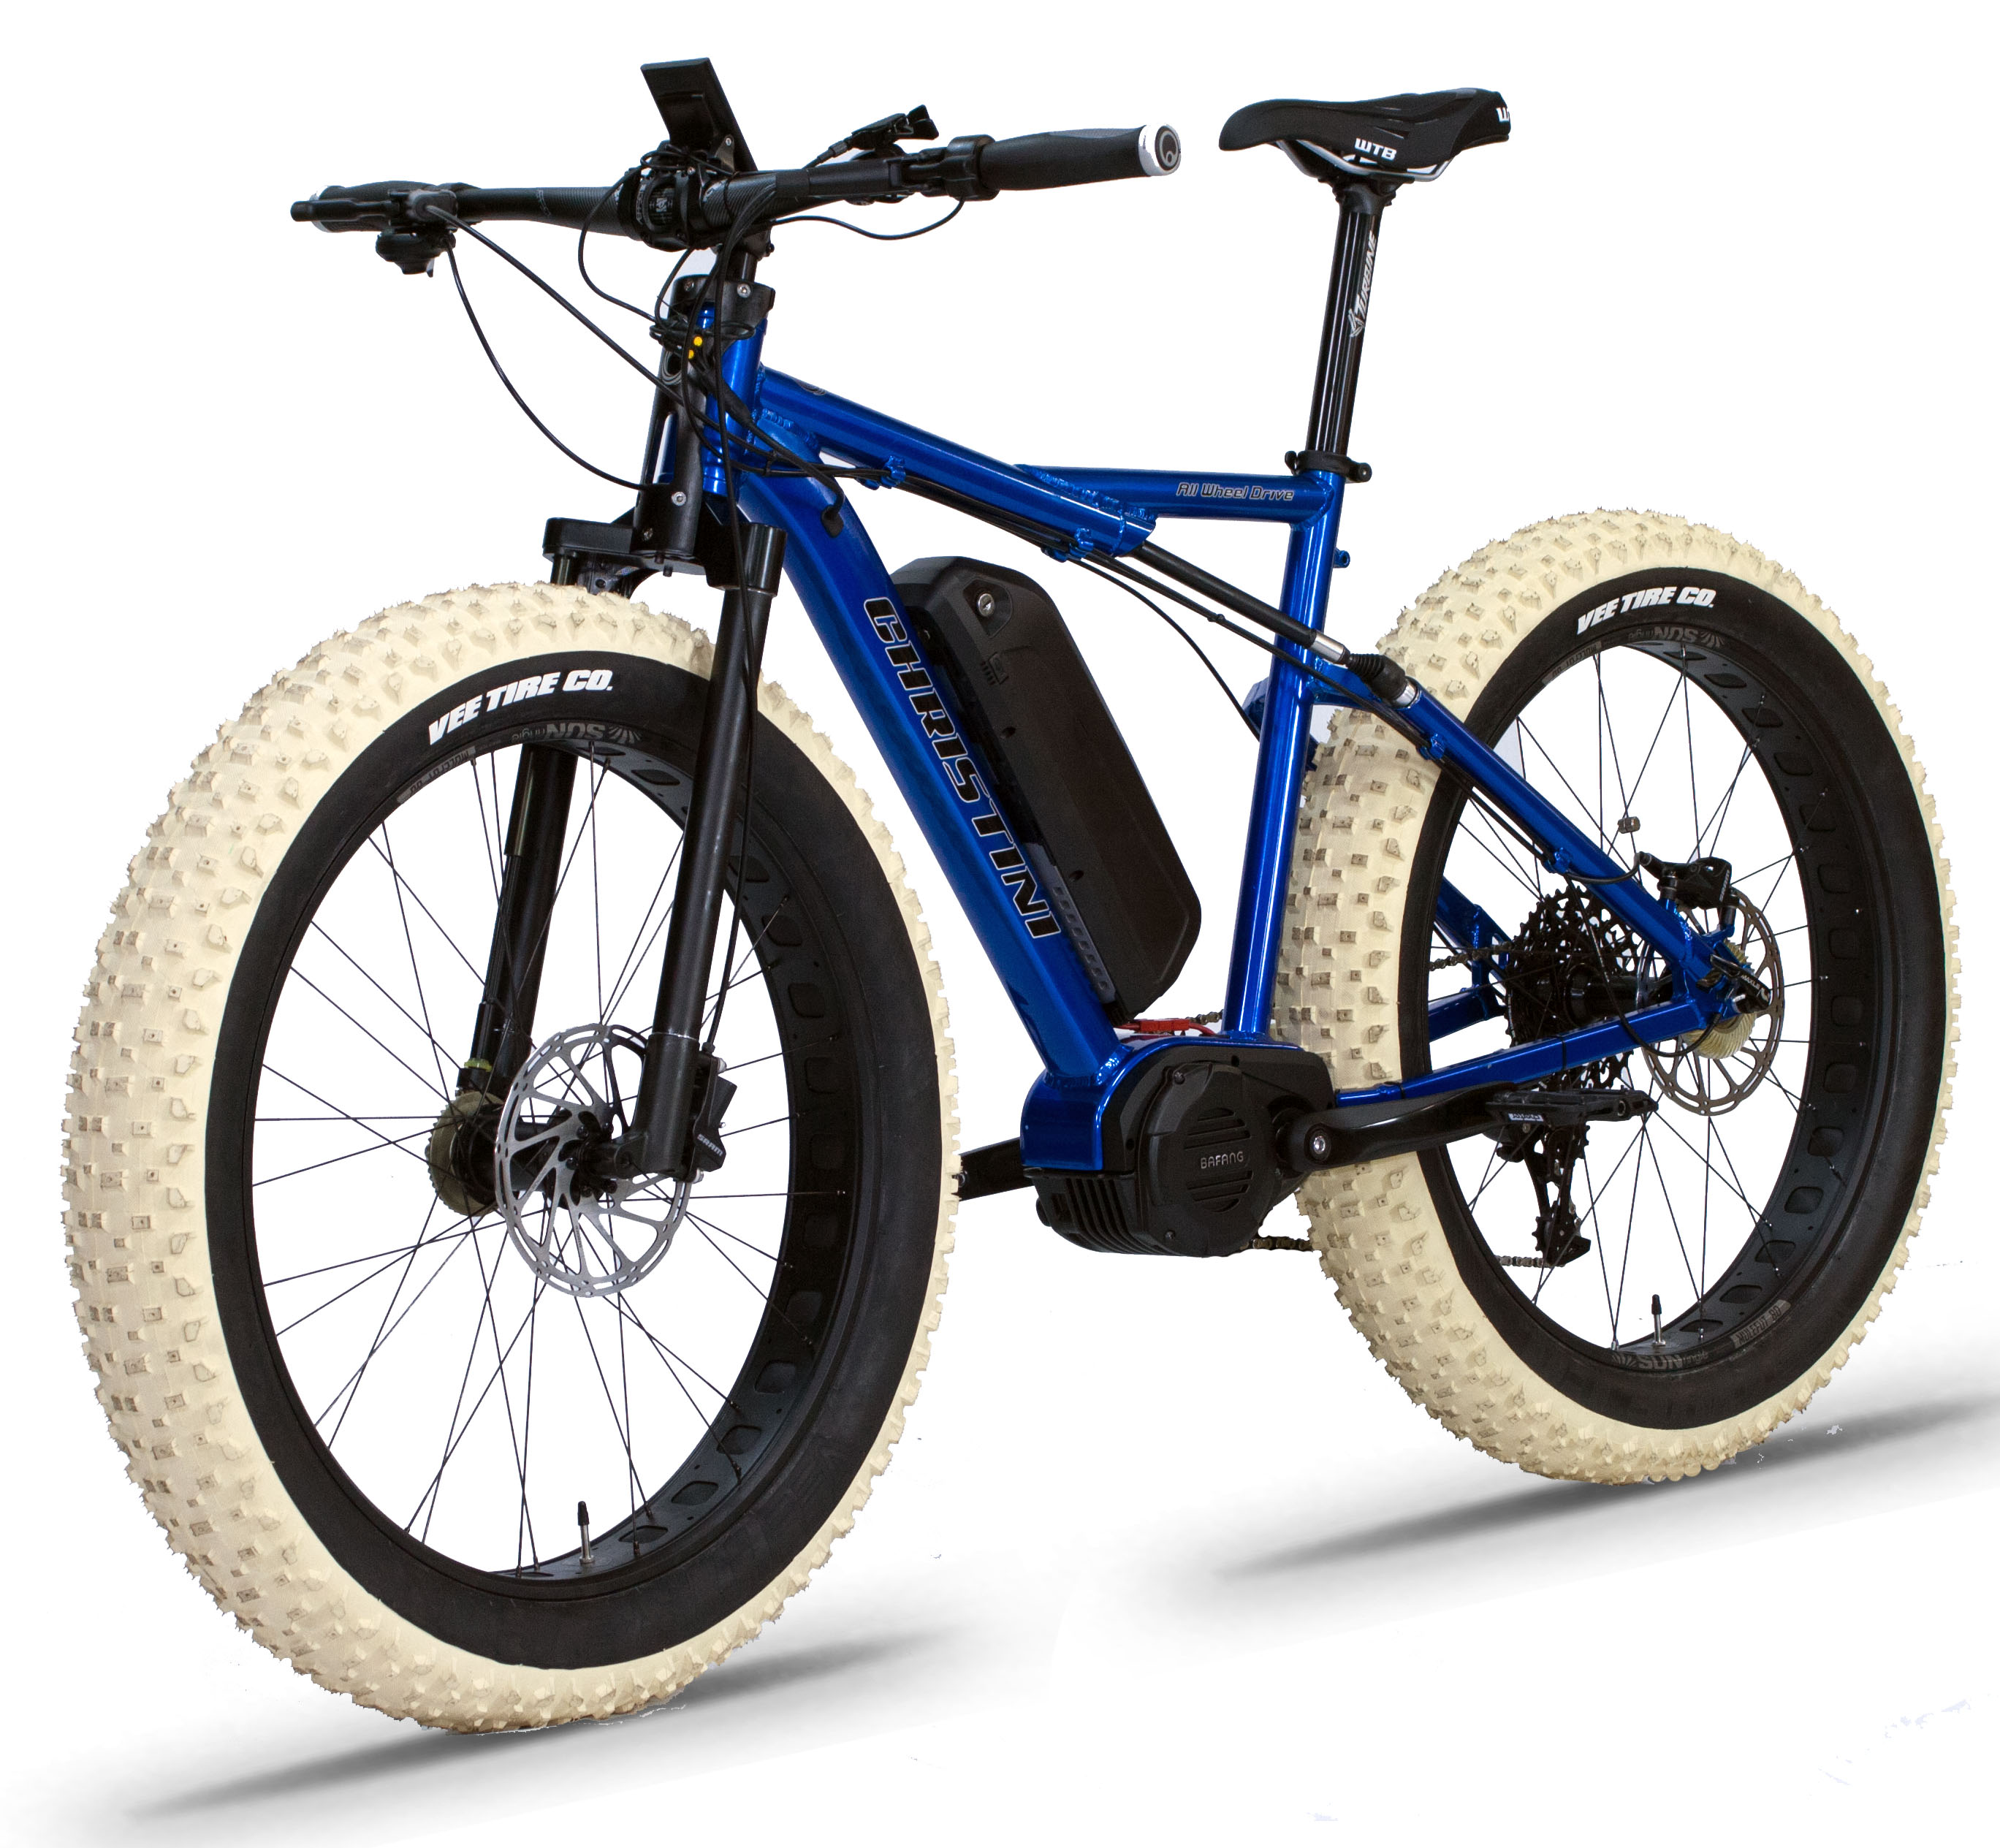 a8b4a6a5ccf Christini All Wheel Drive Bicycles – AWD Fat Bikes & Mountain Bikes